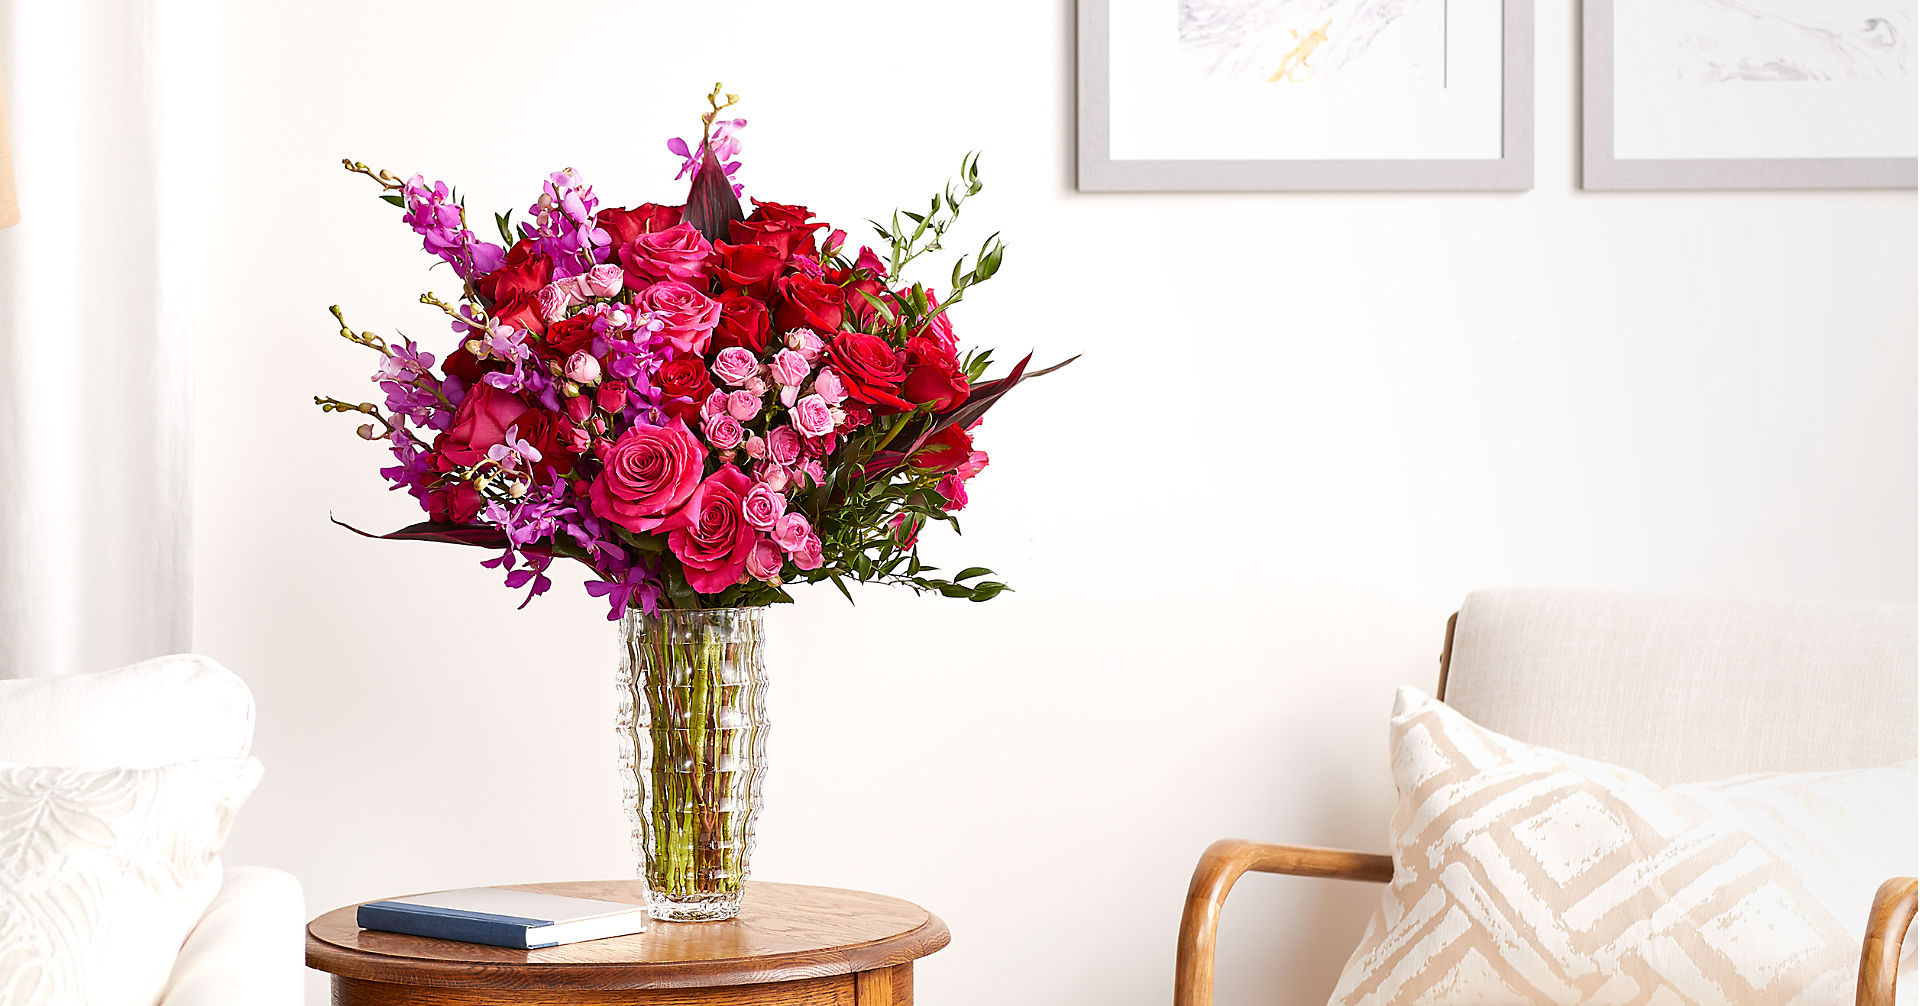 Heart's Wishes™ Luxury Bouquet - VASE INCLUDED - Image 5 Of 5